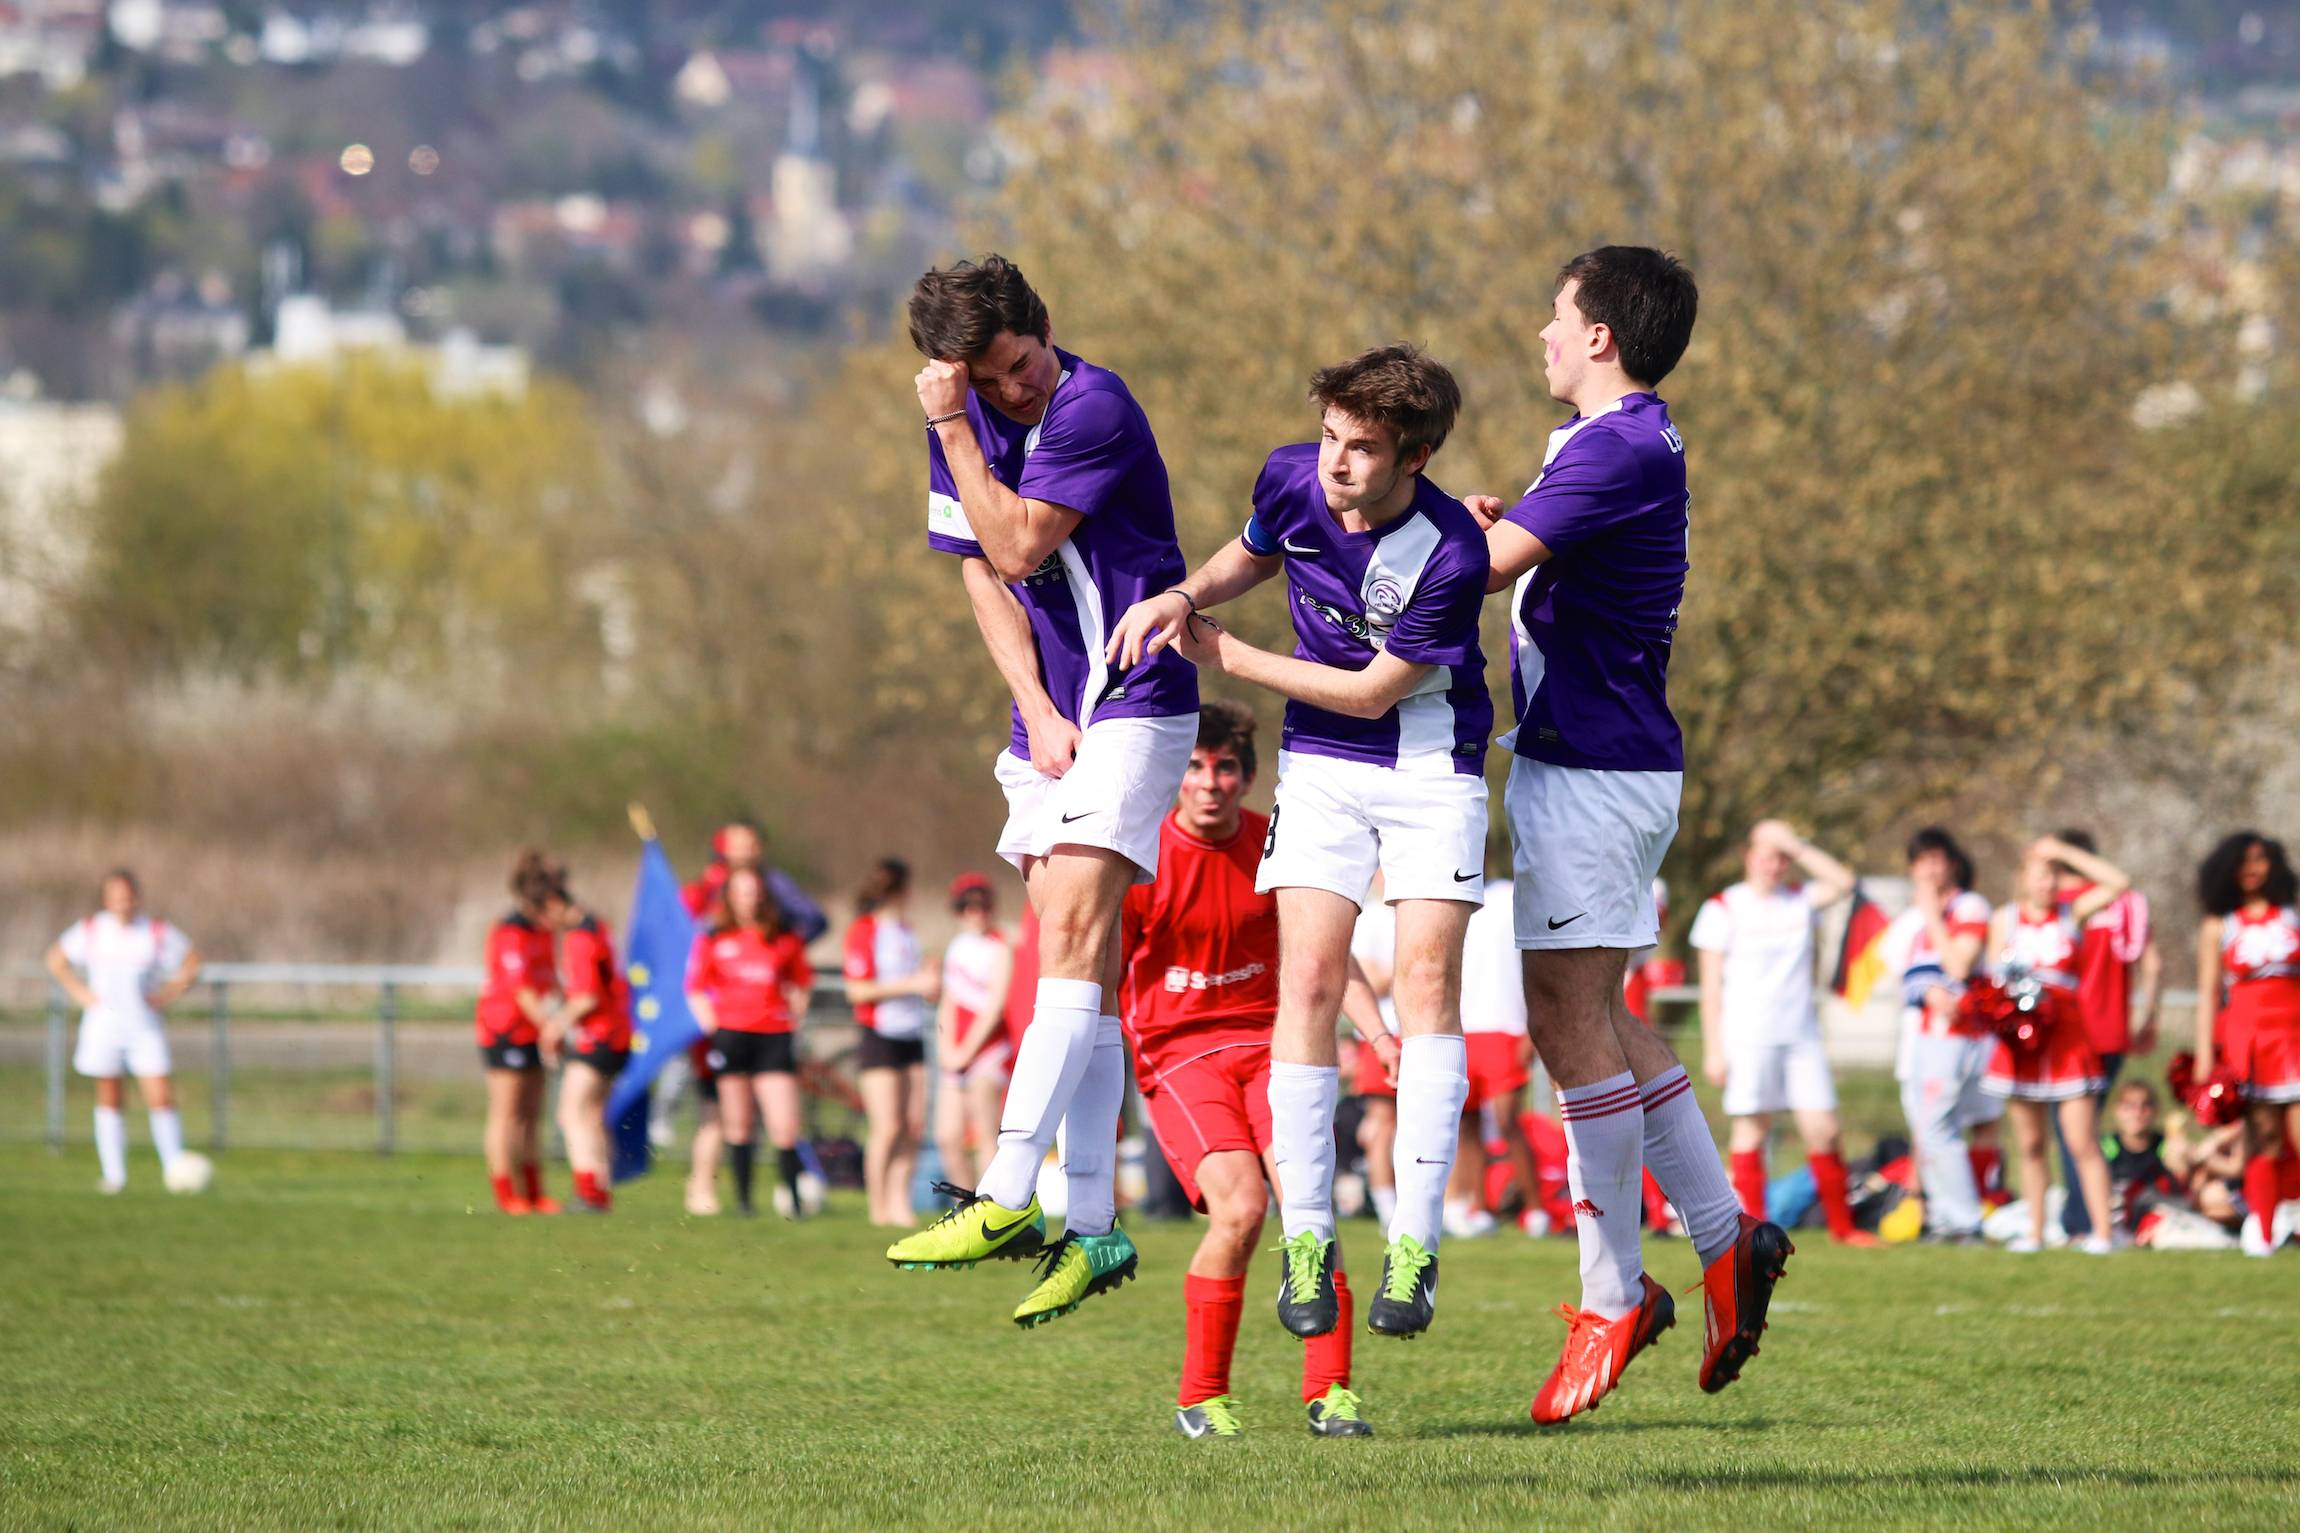 Players from Reims brace as a player from Nancy shoots during an inter-collegiate competition in Nancy, France, March 29, 2014.